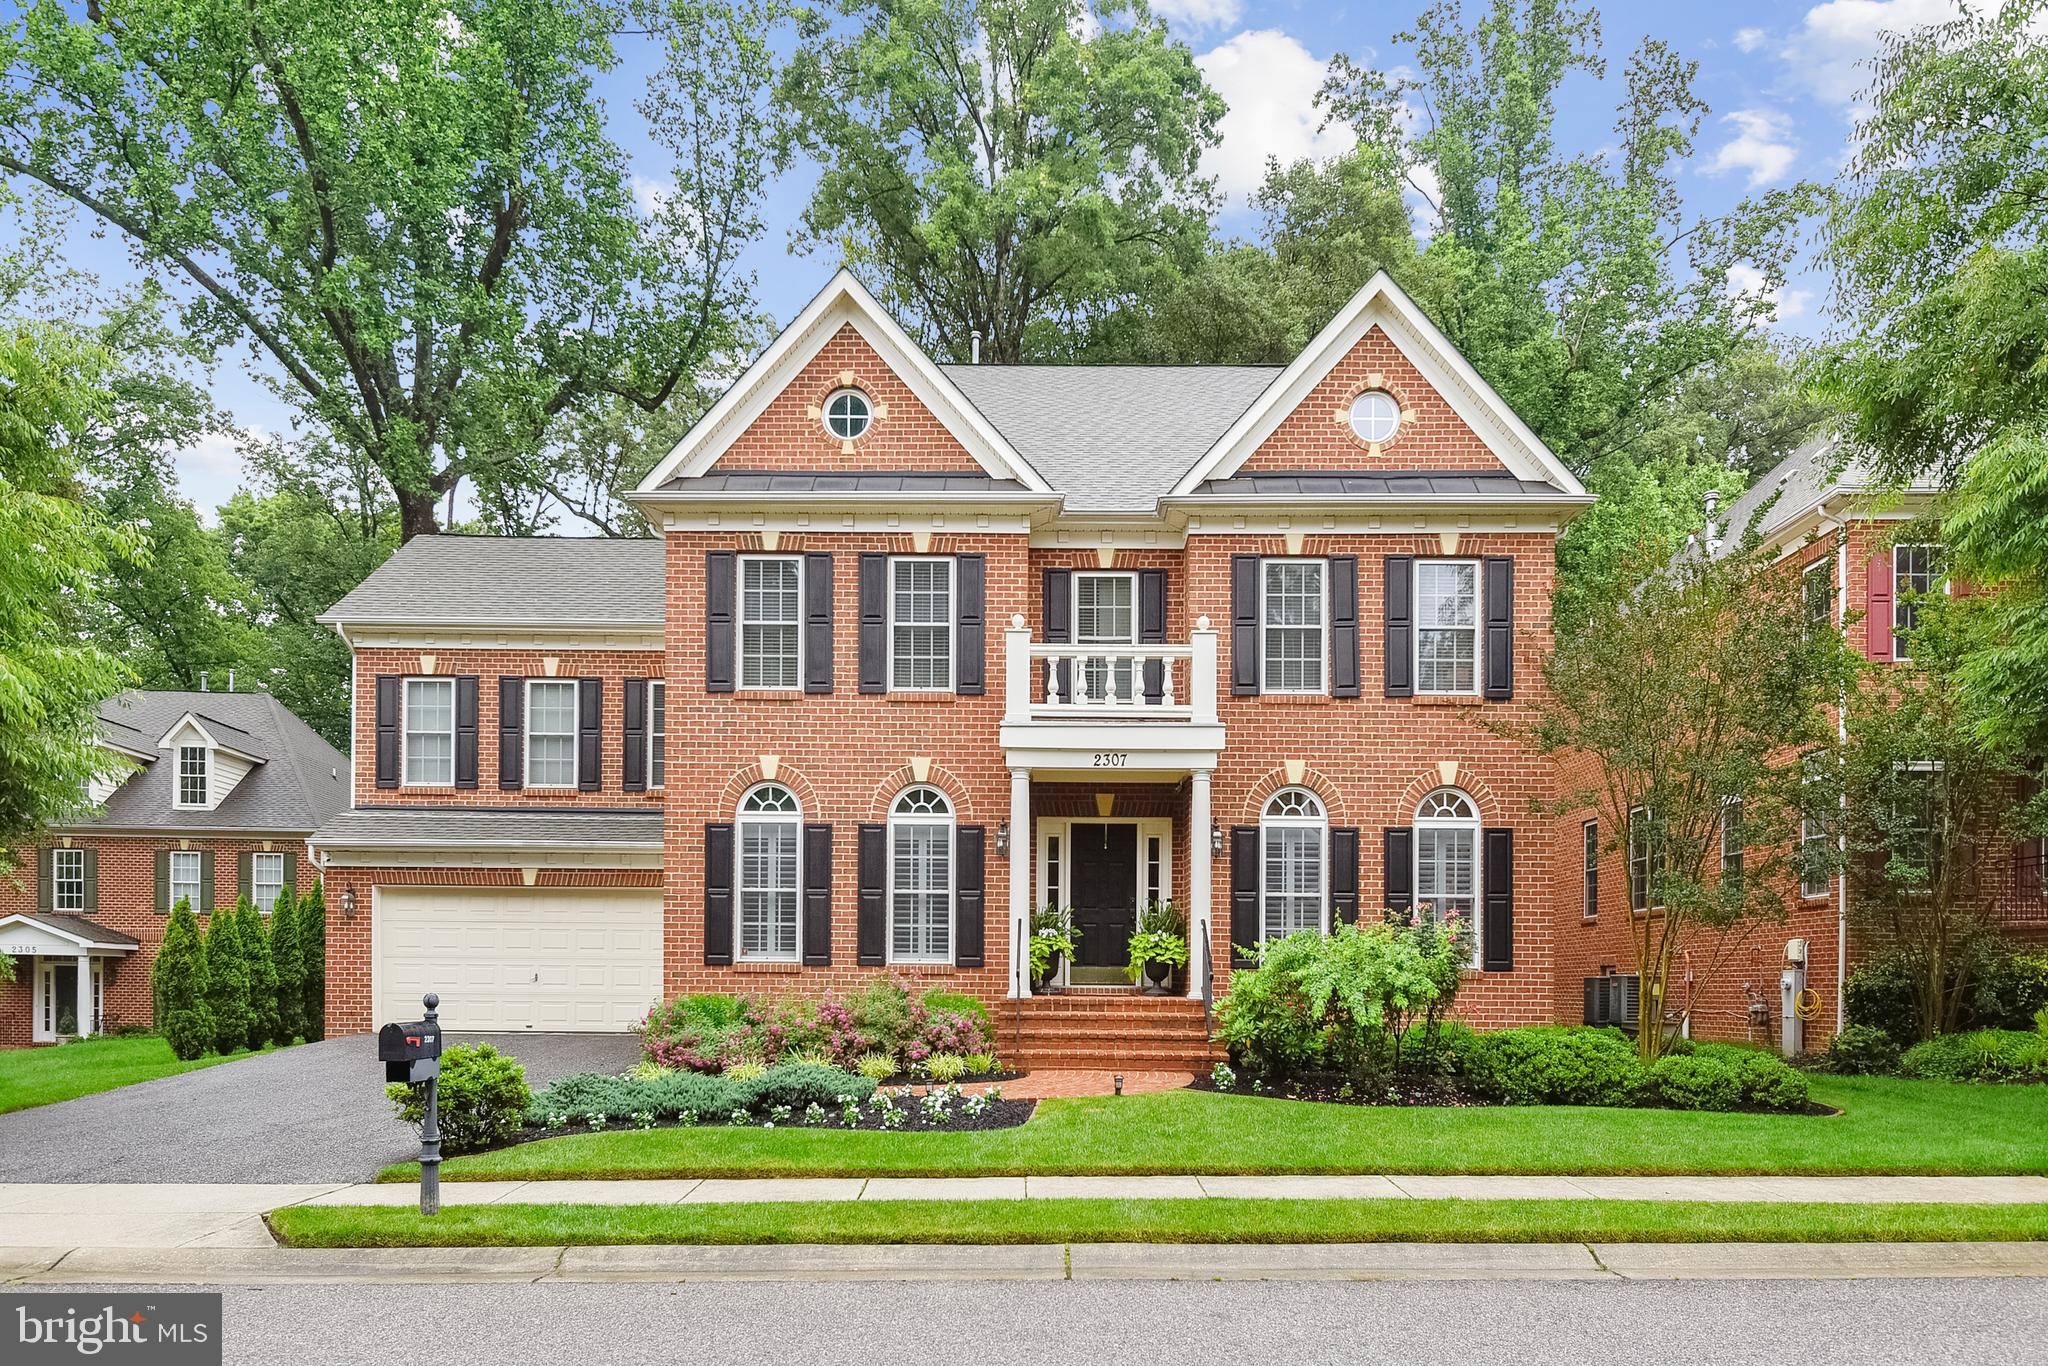 ANNAPOLIS RIDGE STUNNING CUSTOM SMART HOME TUCKED AWAY IN A  SMALL  WOODED ENCLAVE OF 20 HOMES, LOCA